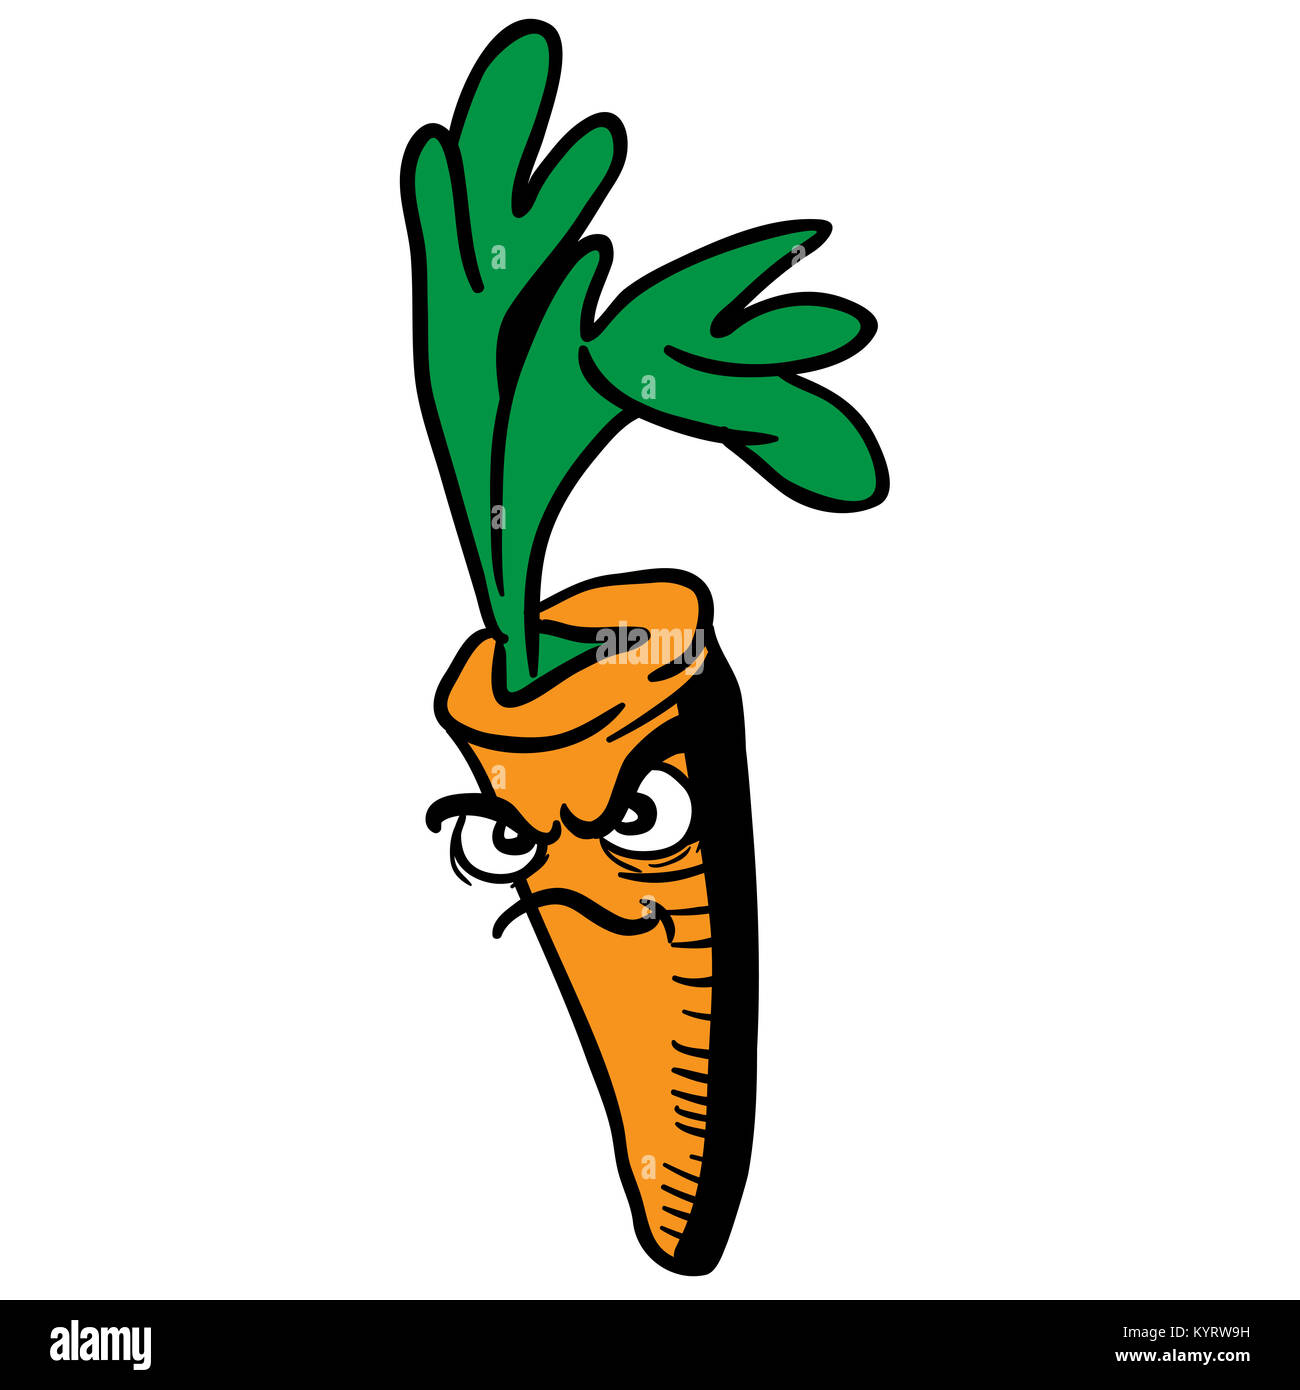 Angry Carrot Cartoon Illustration Isolated On White Stock Photo